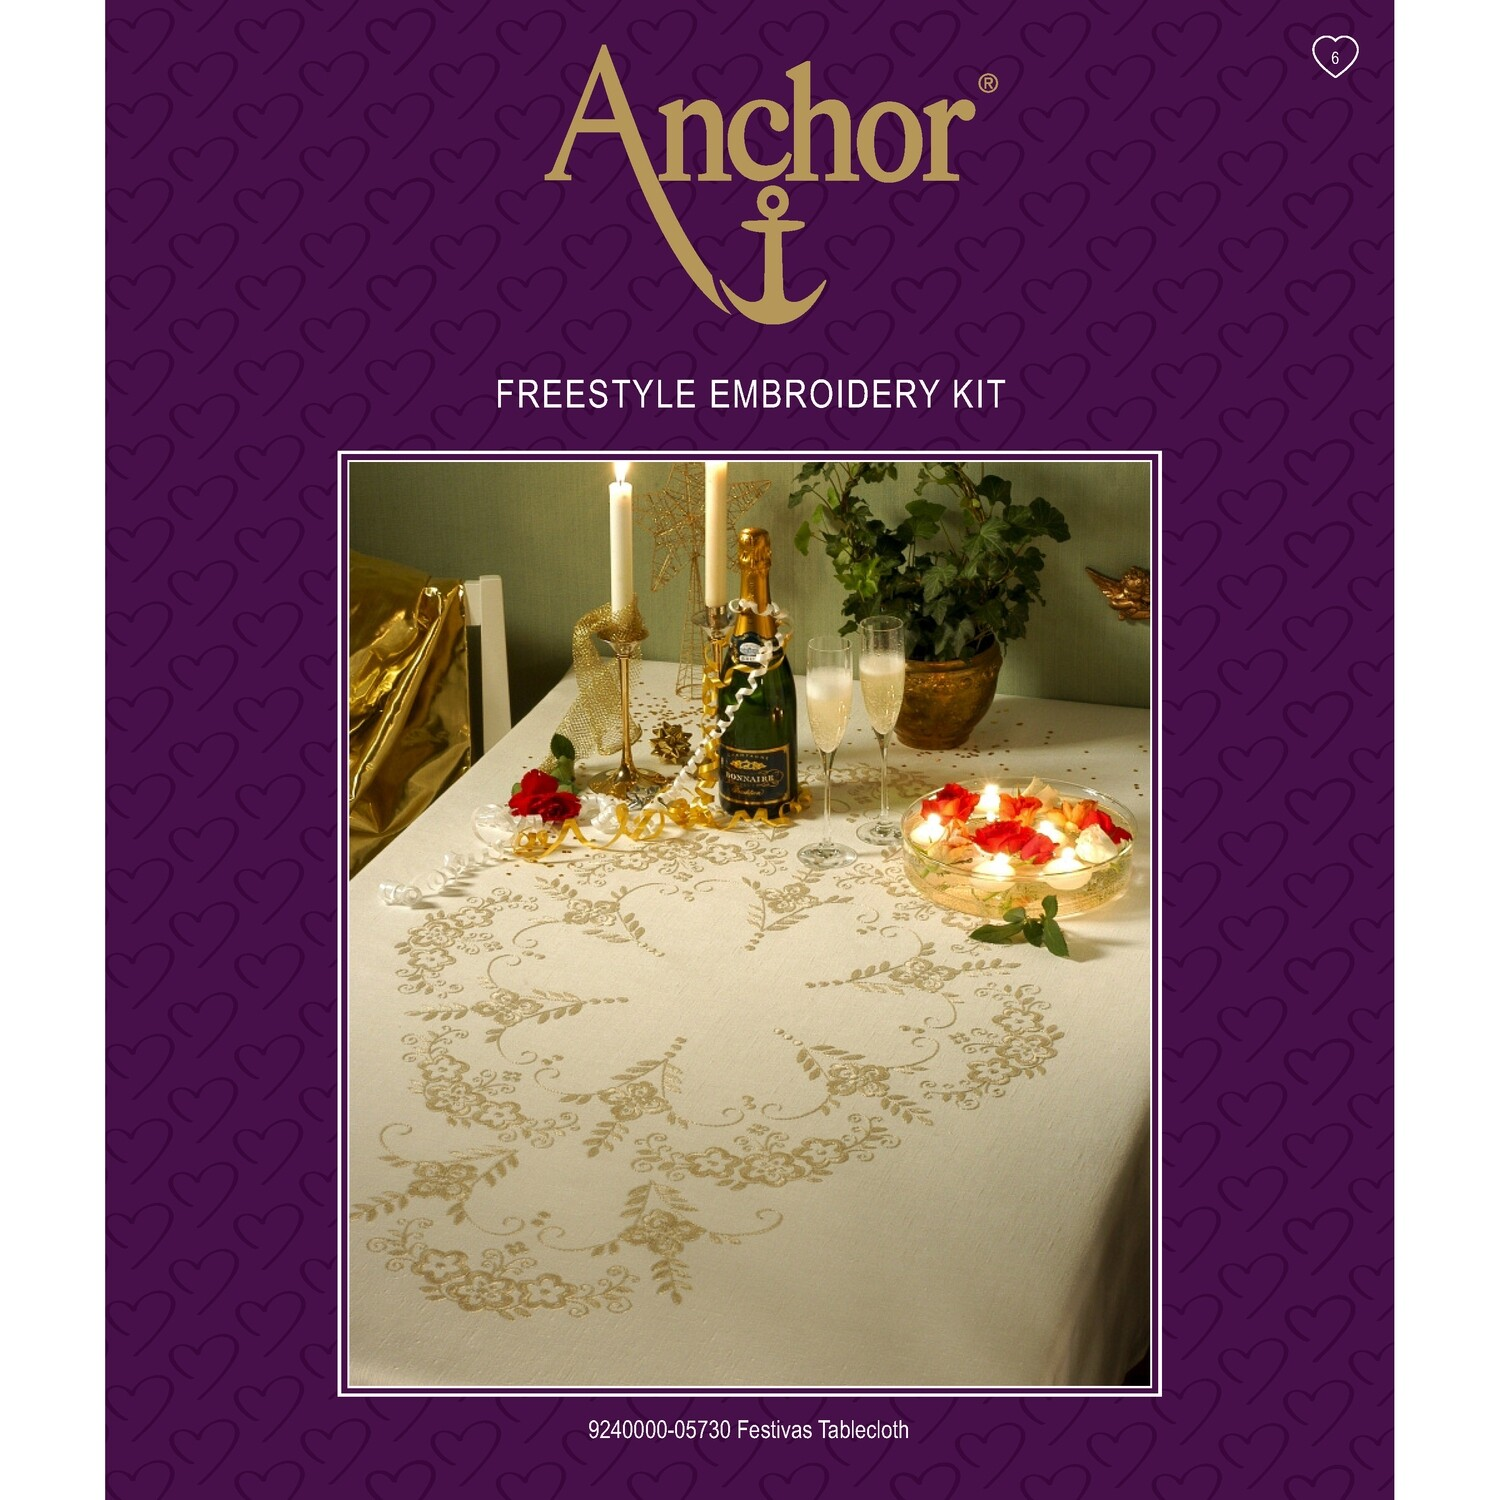 Anchor Essentials Freestyle Kit - Festive Tablecloth